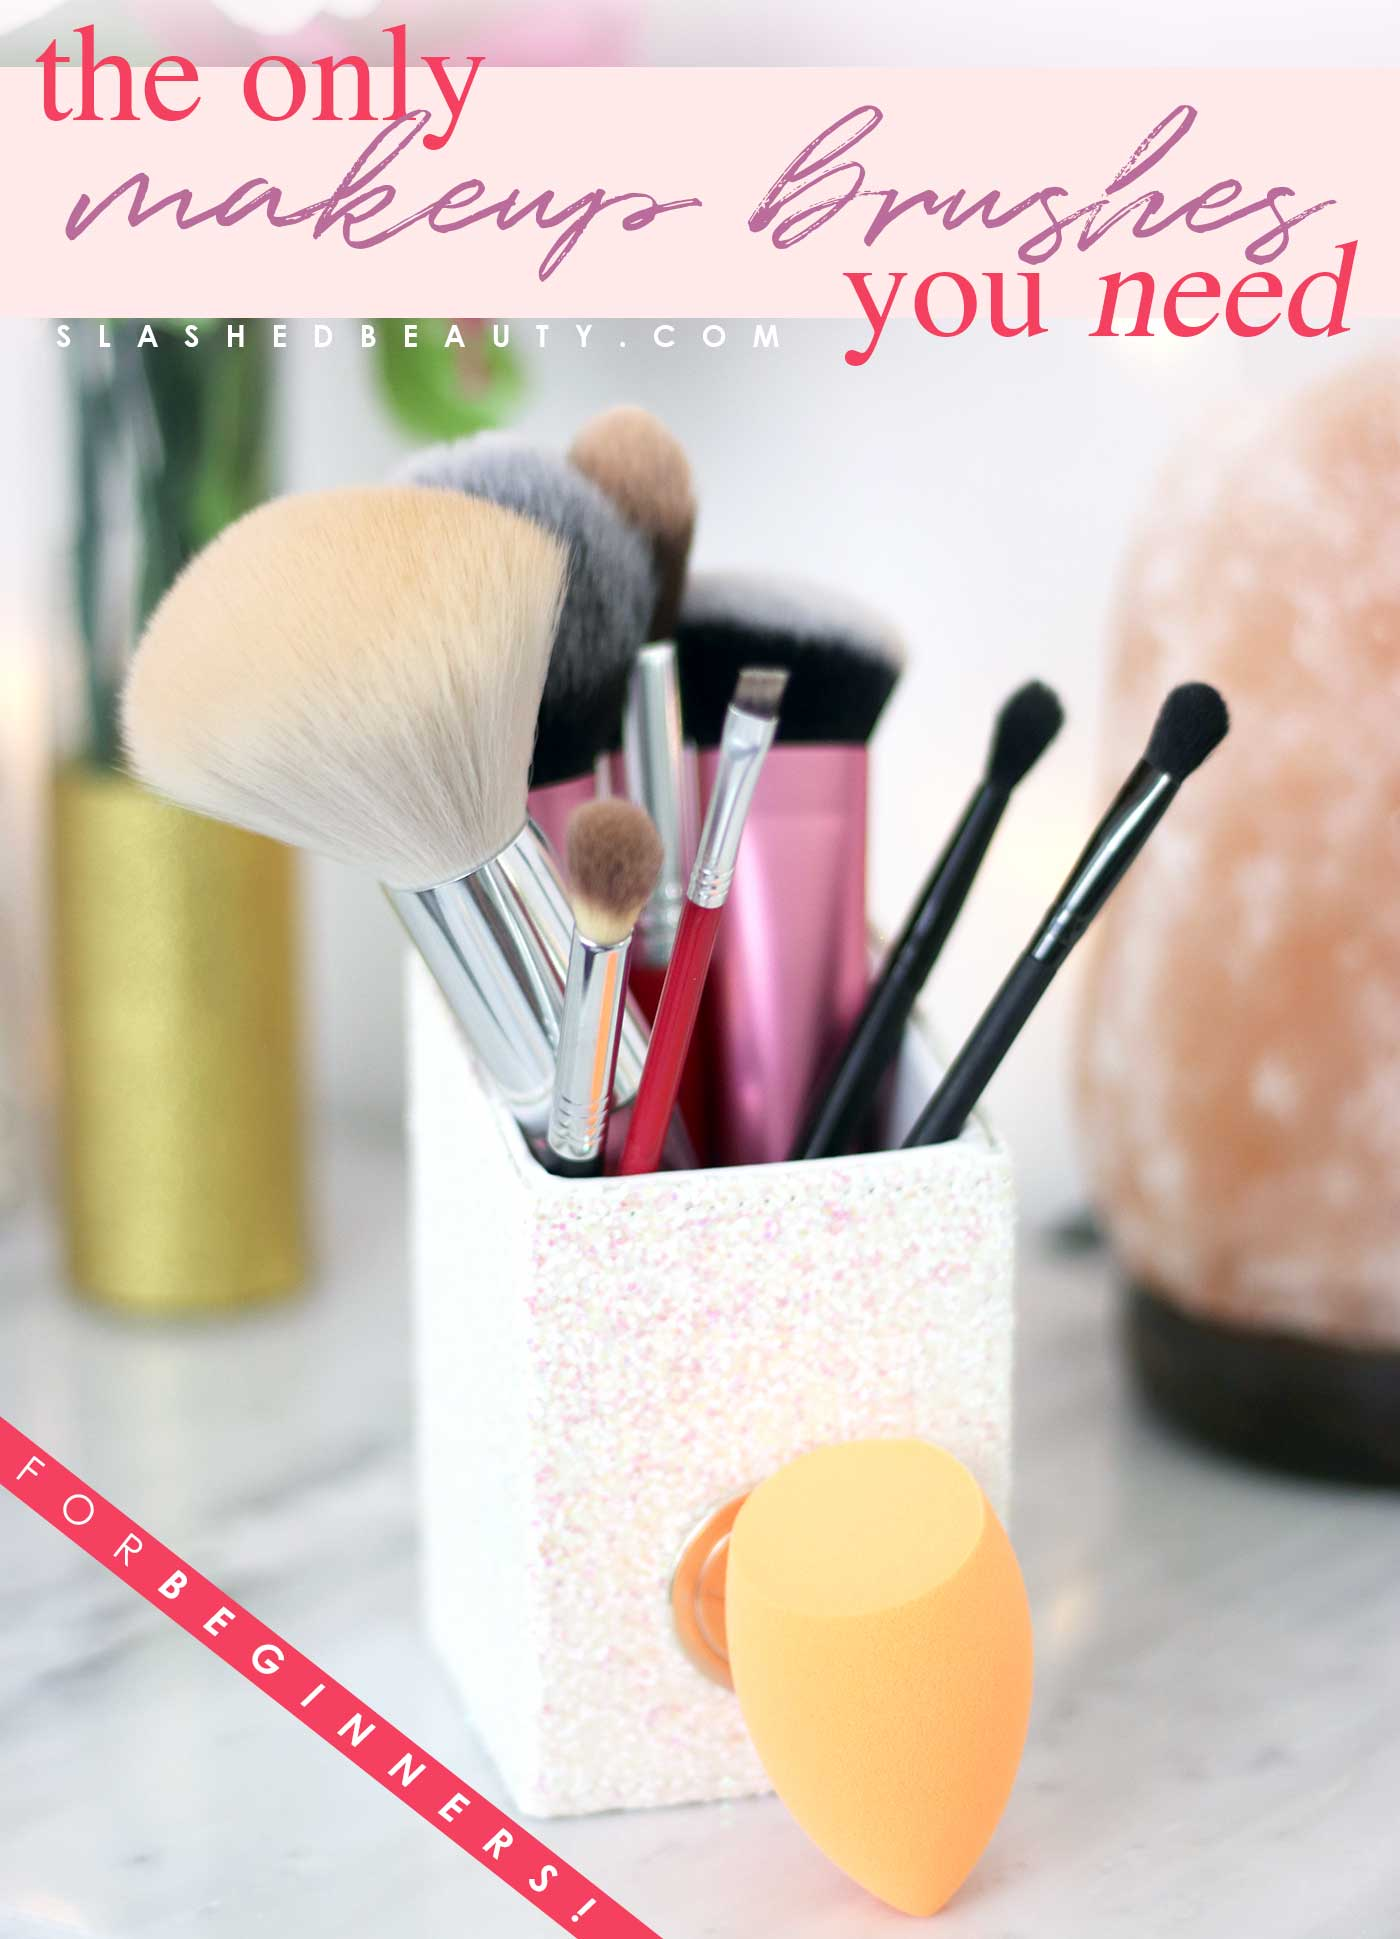 Makeup Brush Guide for Beginners | What Makeup Brushes Do You Need | Makeup Brushes for Beginners | Slashed Beauty